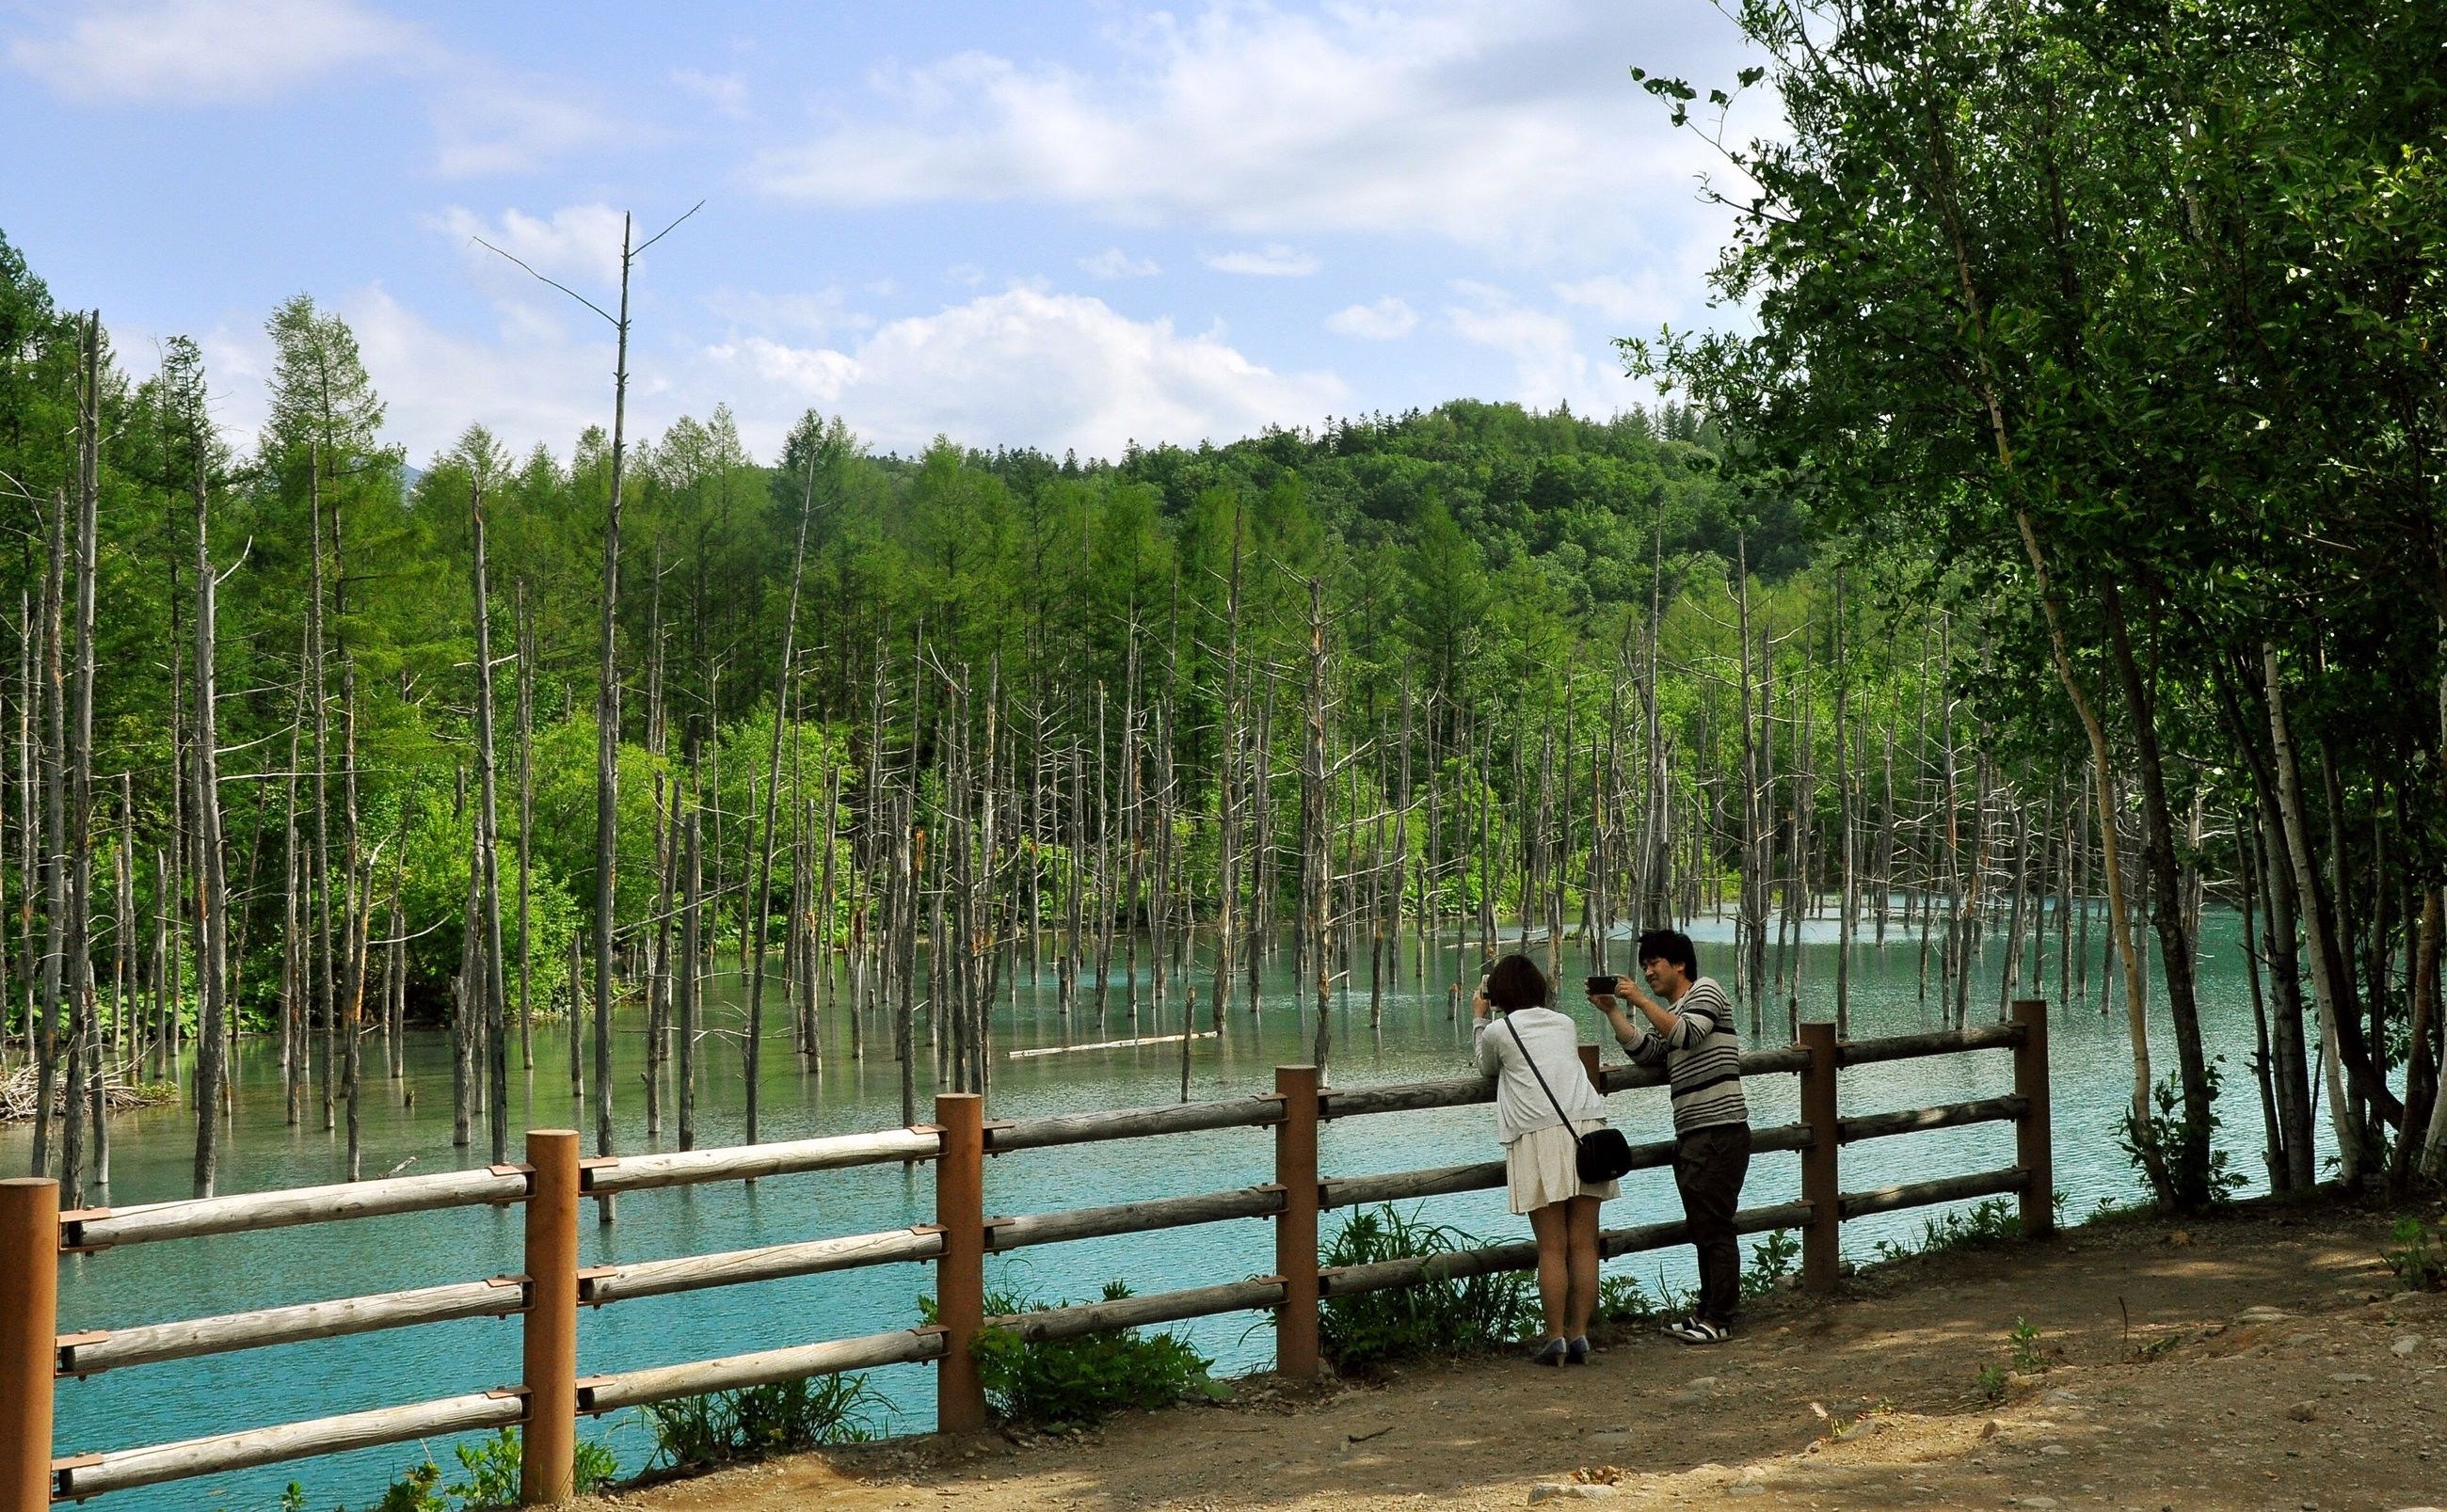 tree, railing, water, leisure activity, lifestyles, sky, rear view, full length, men, tranquility, nature, standing, tranquil scene, person, beauty in nature, scenics, lake, togetherness